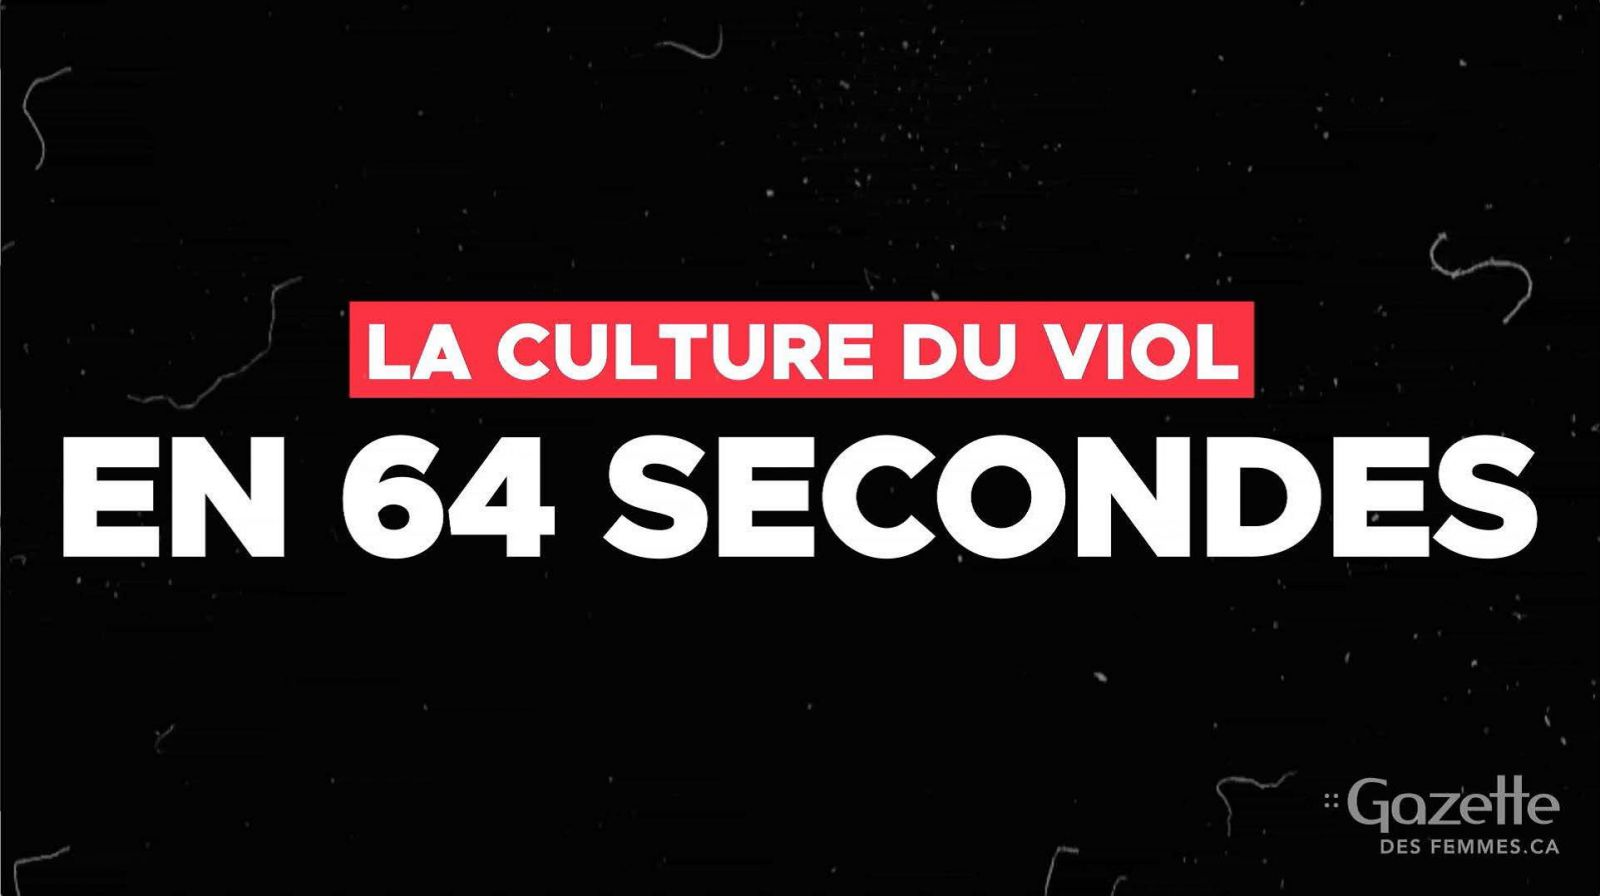 LA CULTURE DU VIOL EN 64 SECONDES